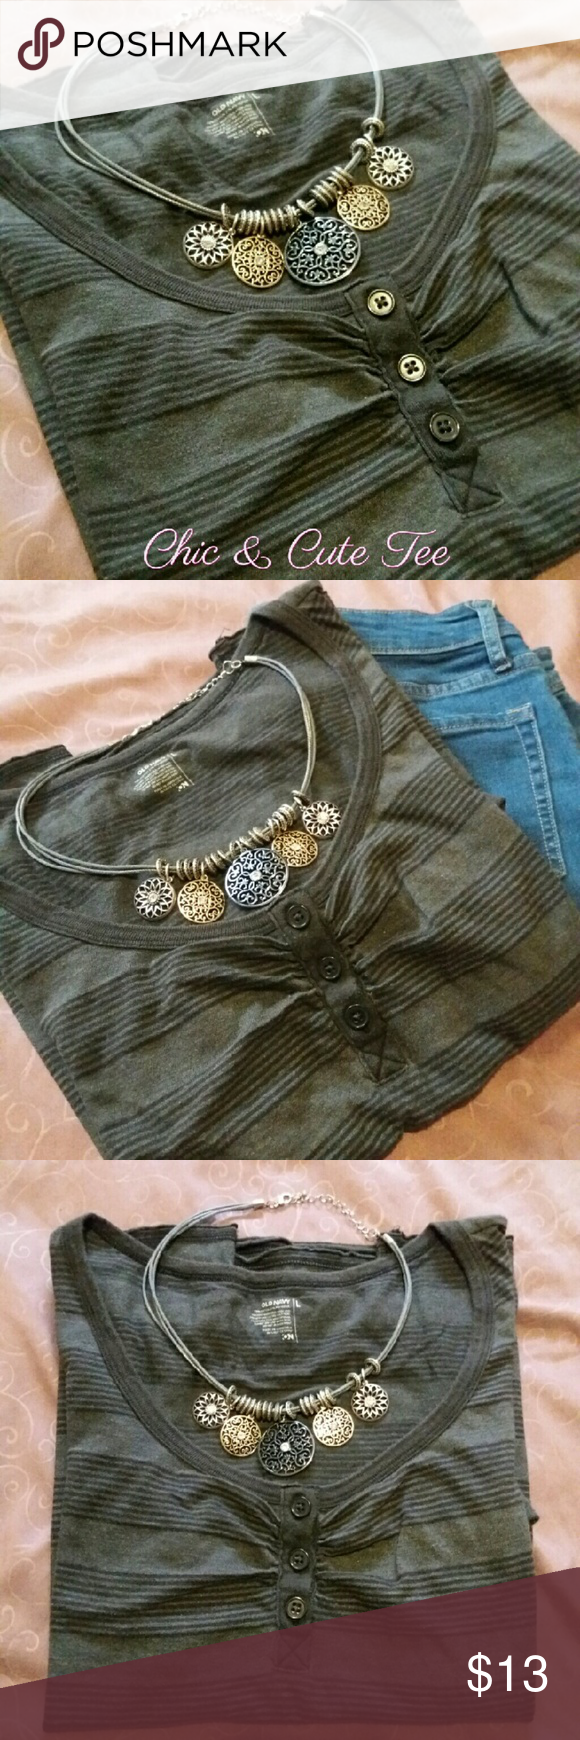 Old Navy Button Top Chic & cute black & gray stylish top. Gently used but like new in excellent condition! Tops Tees - Short Sleeve